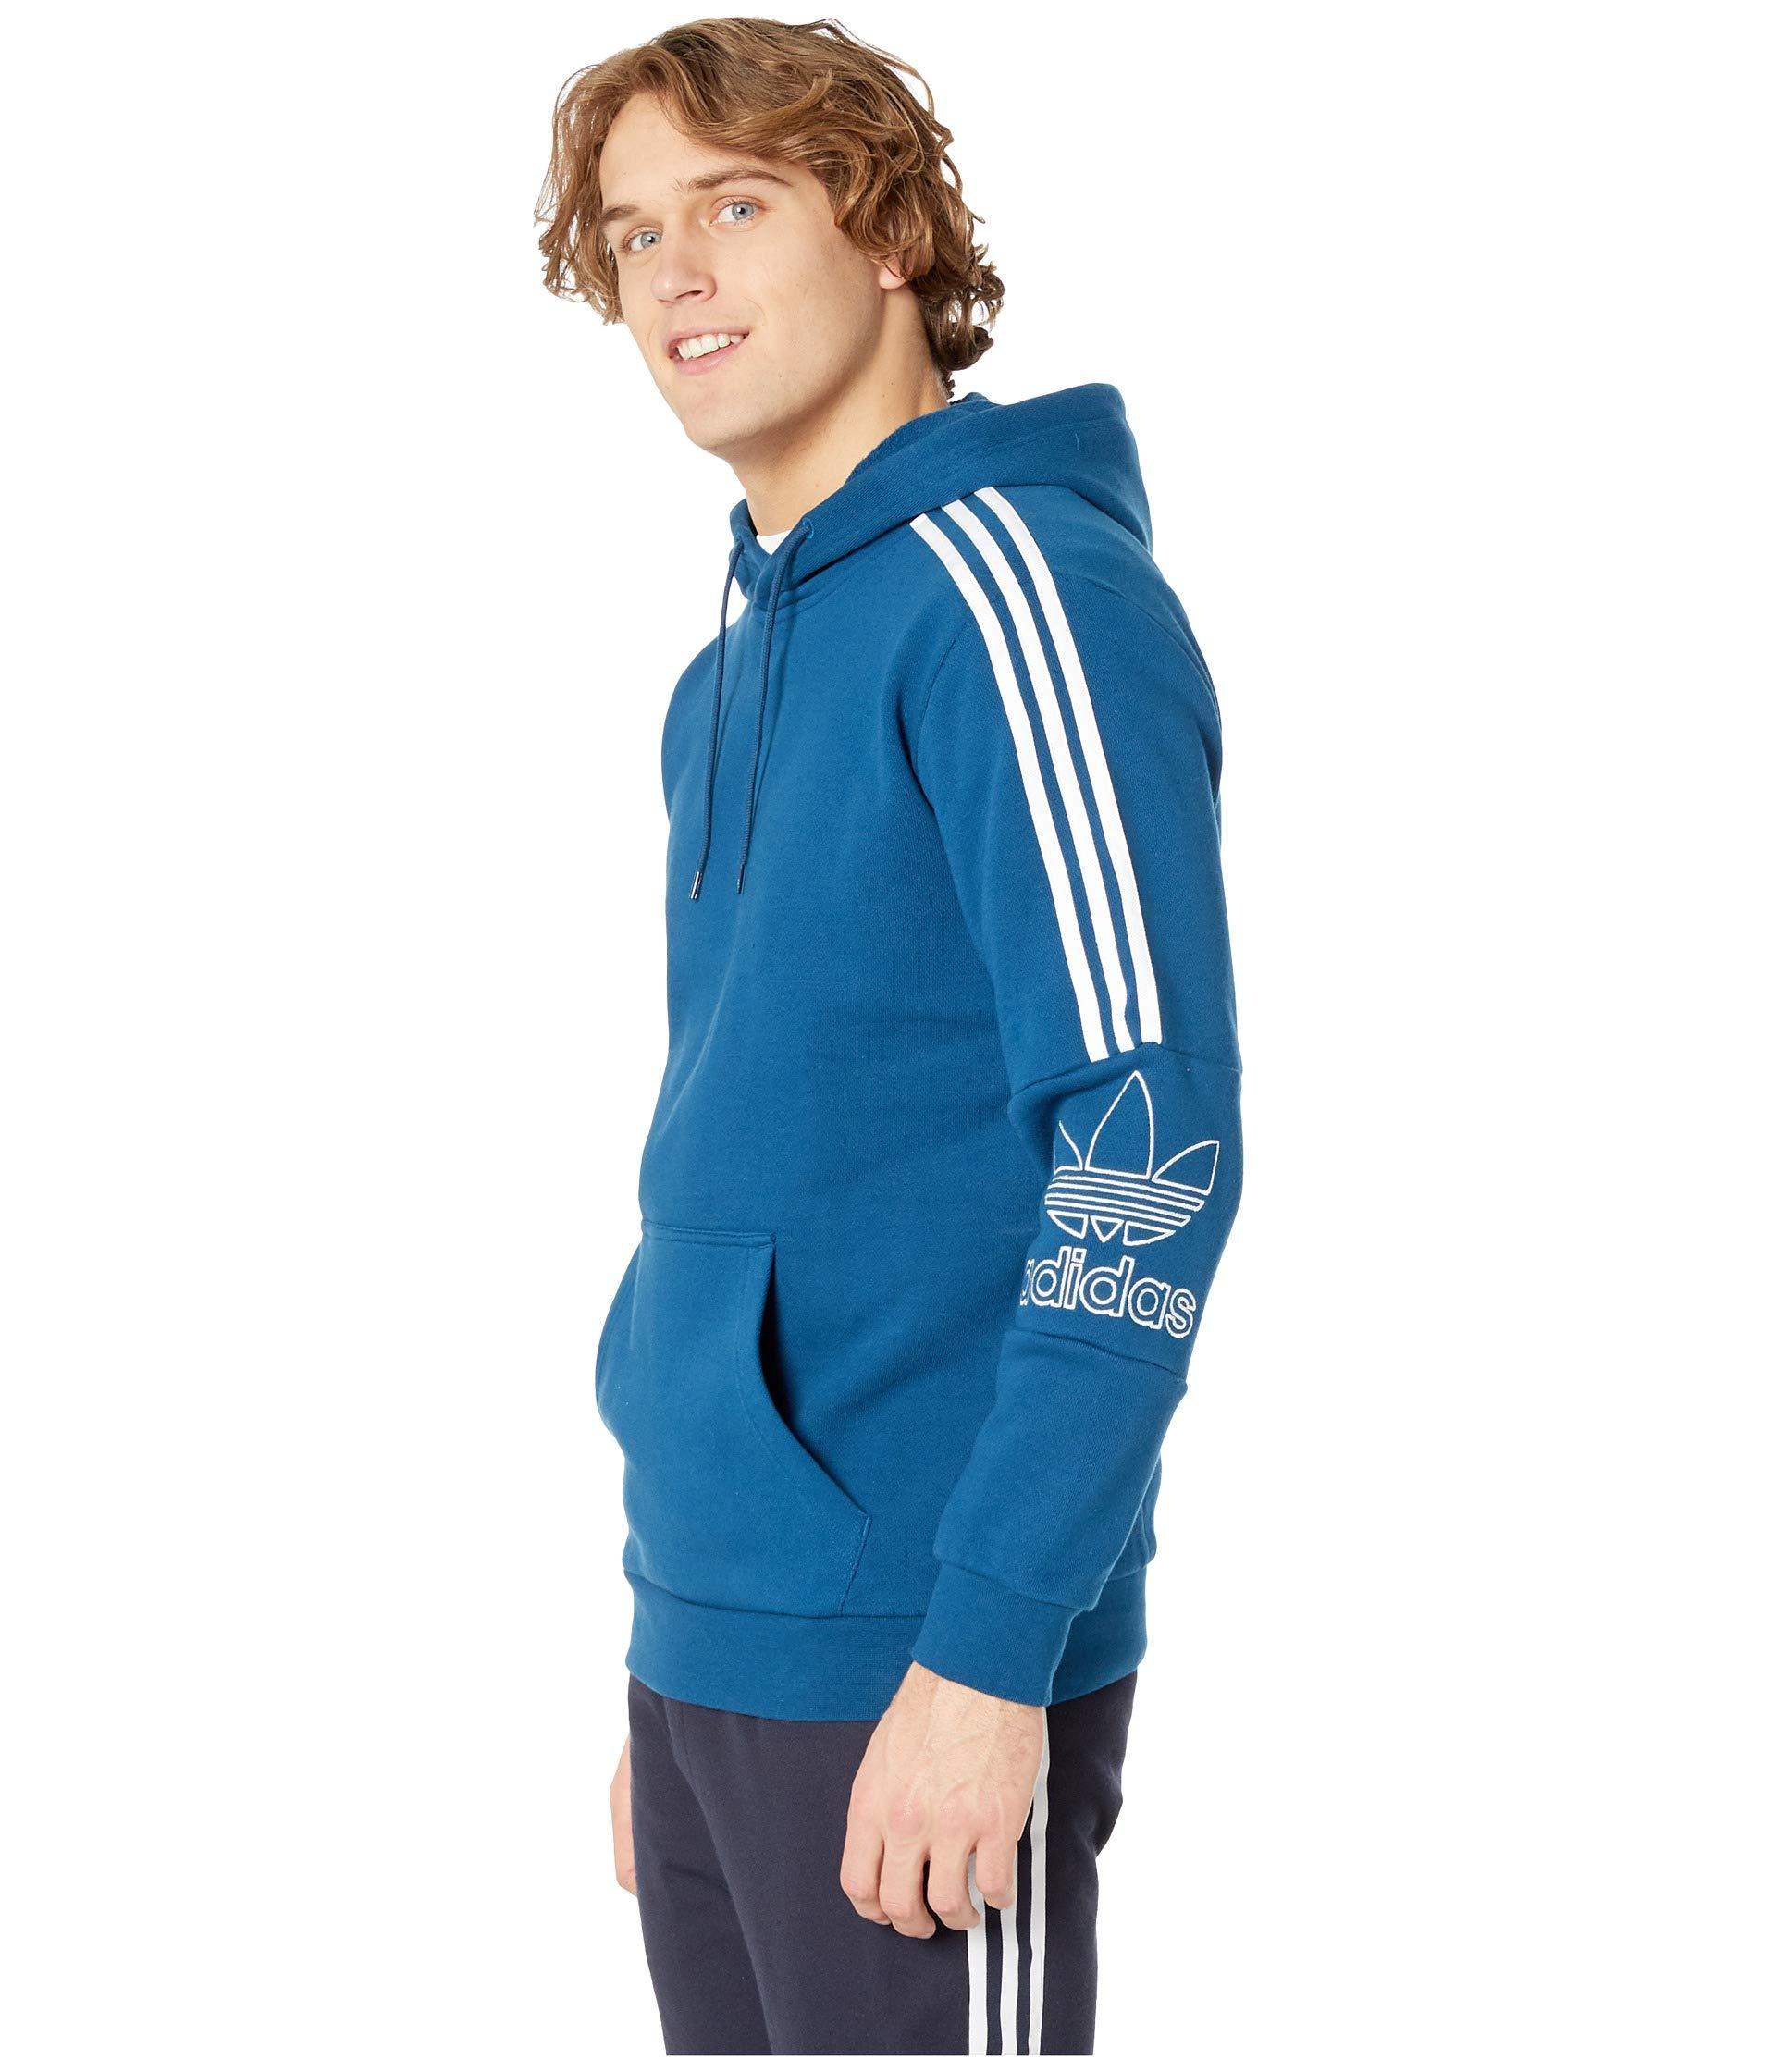 fb8a0bb7e1b2 Lyst - adidas Originals Outline Hoodie in Blue for Men